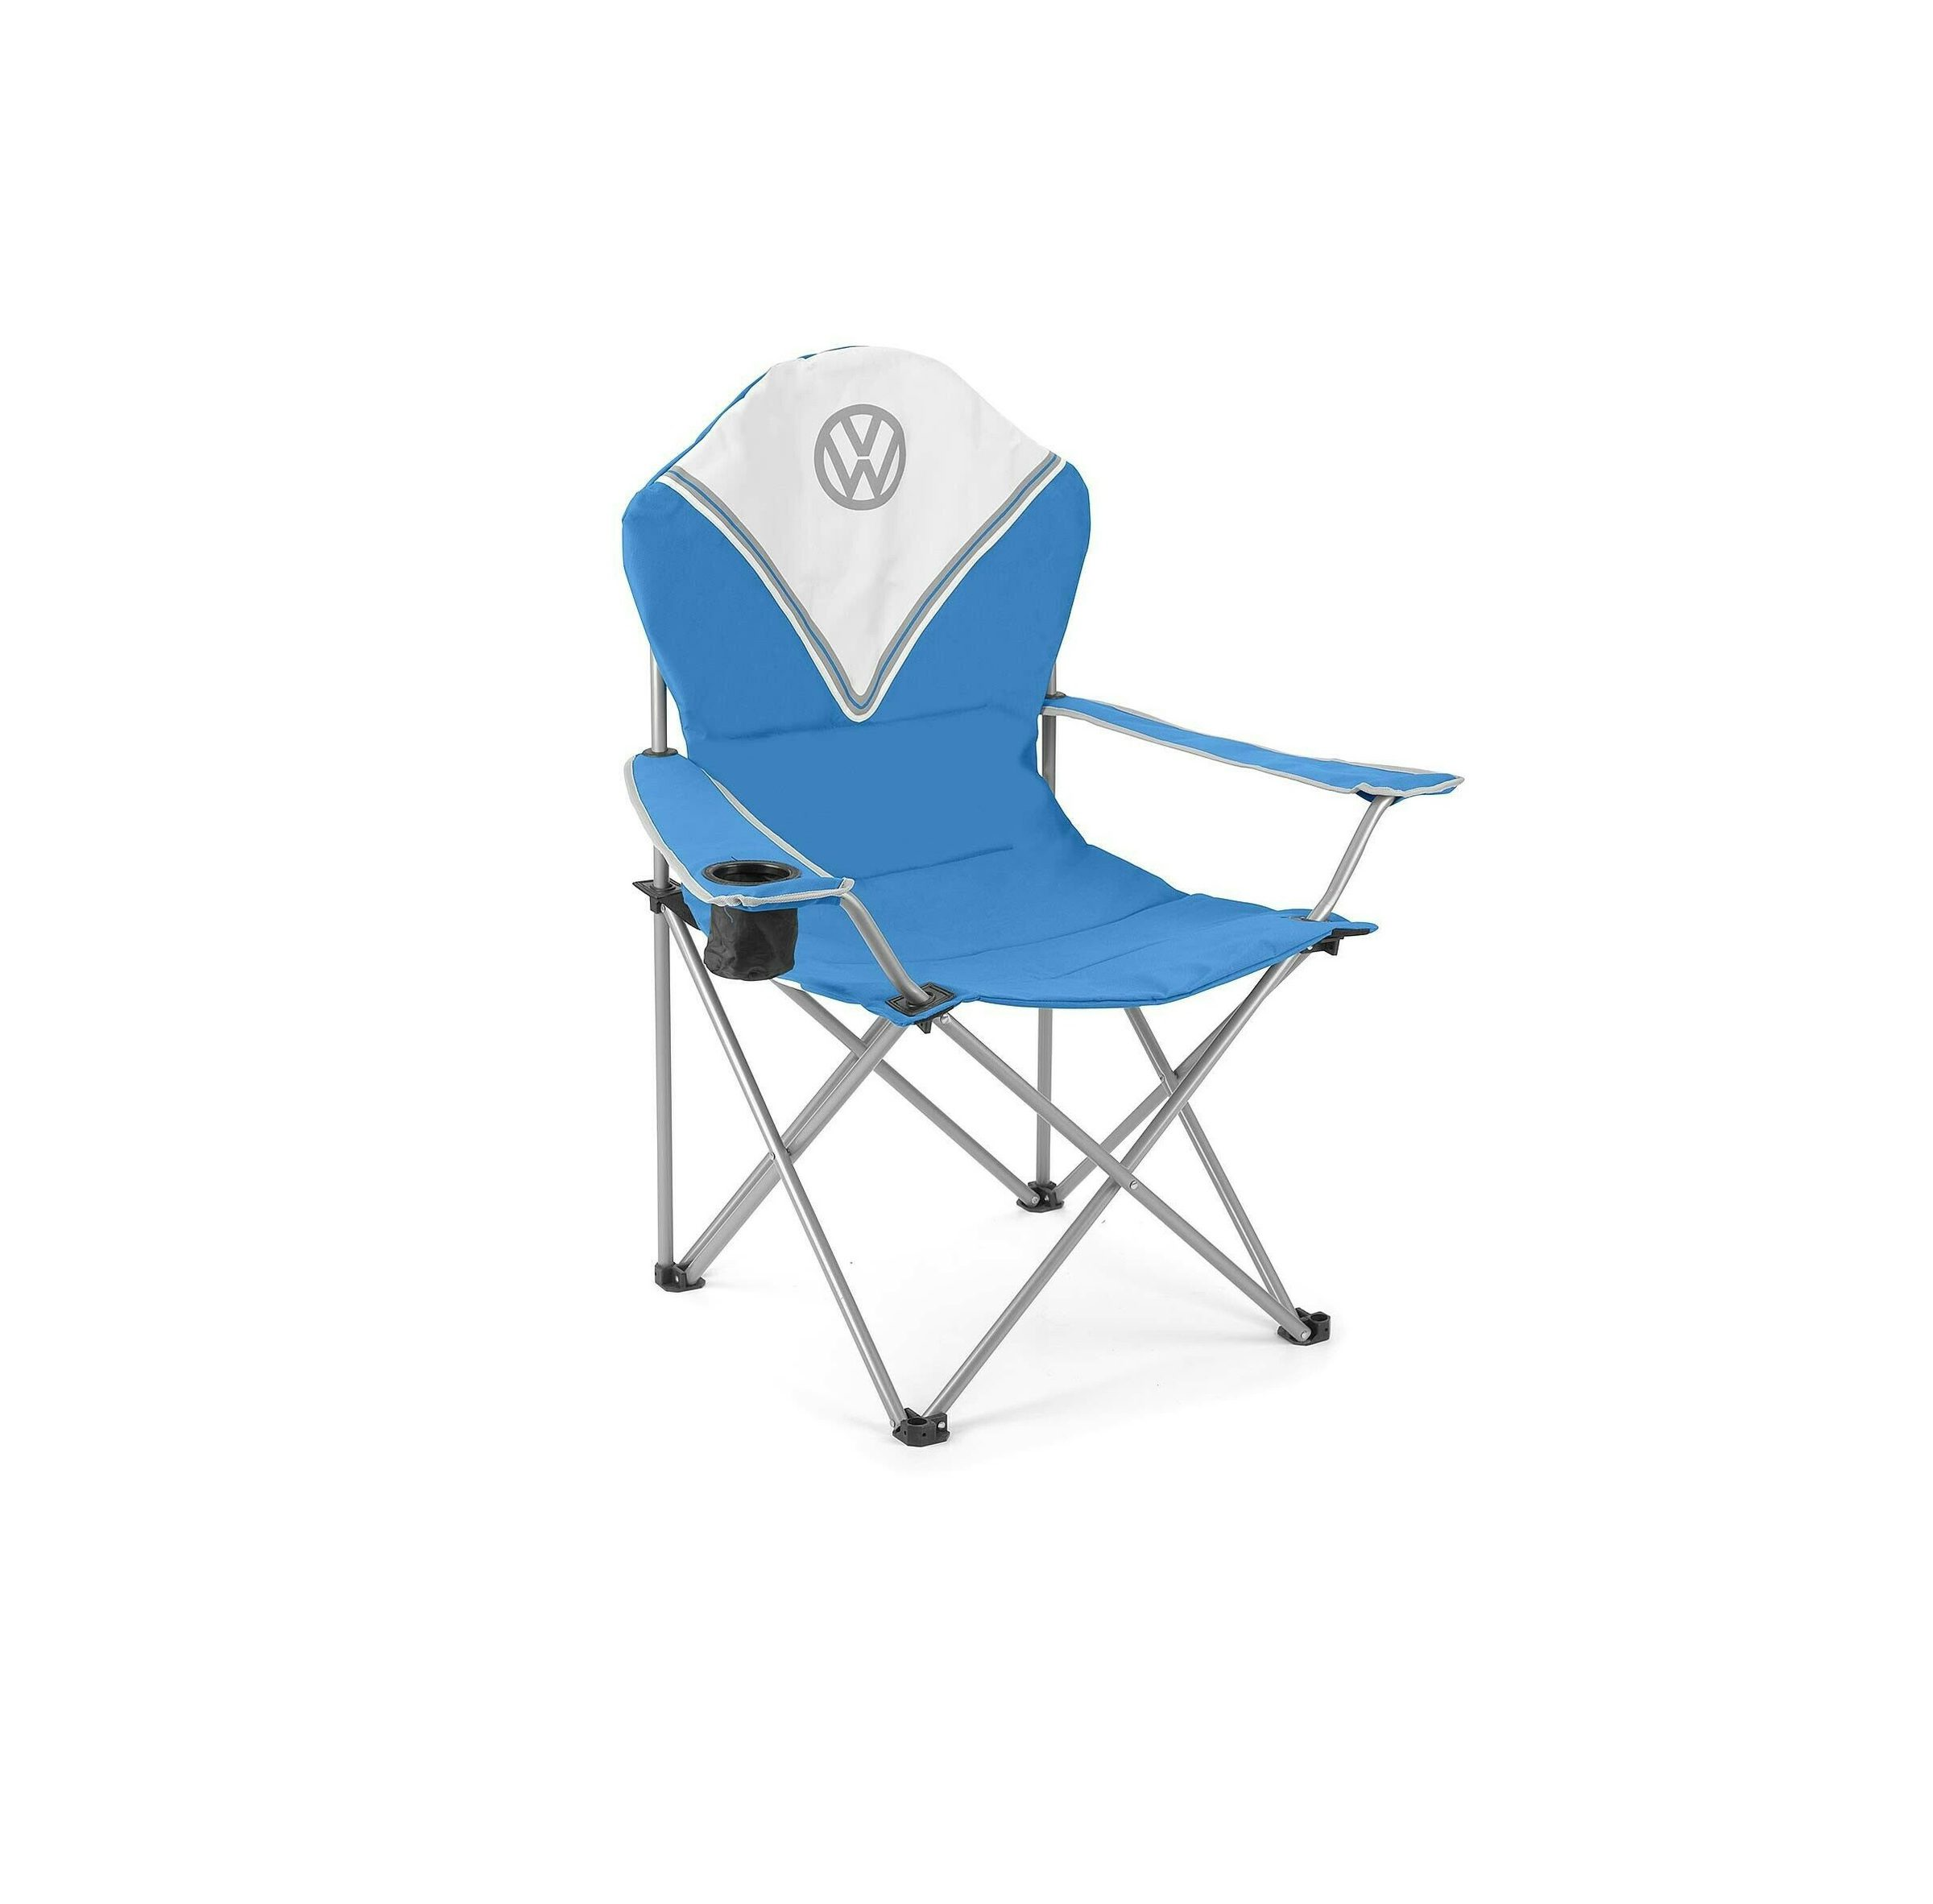 Vw Deluxe Padded Chair Blue